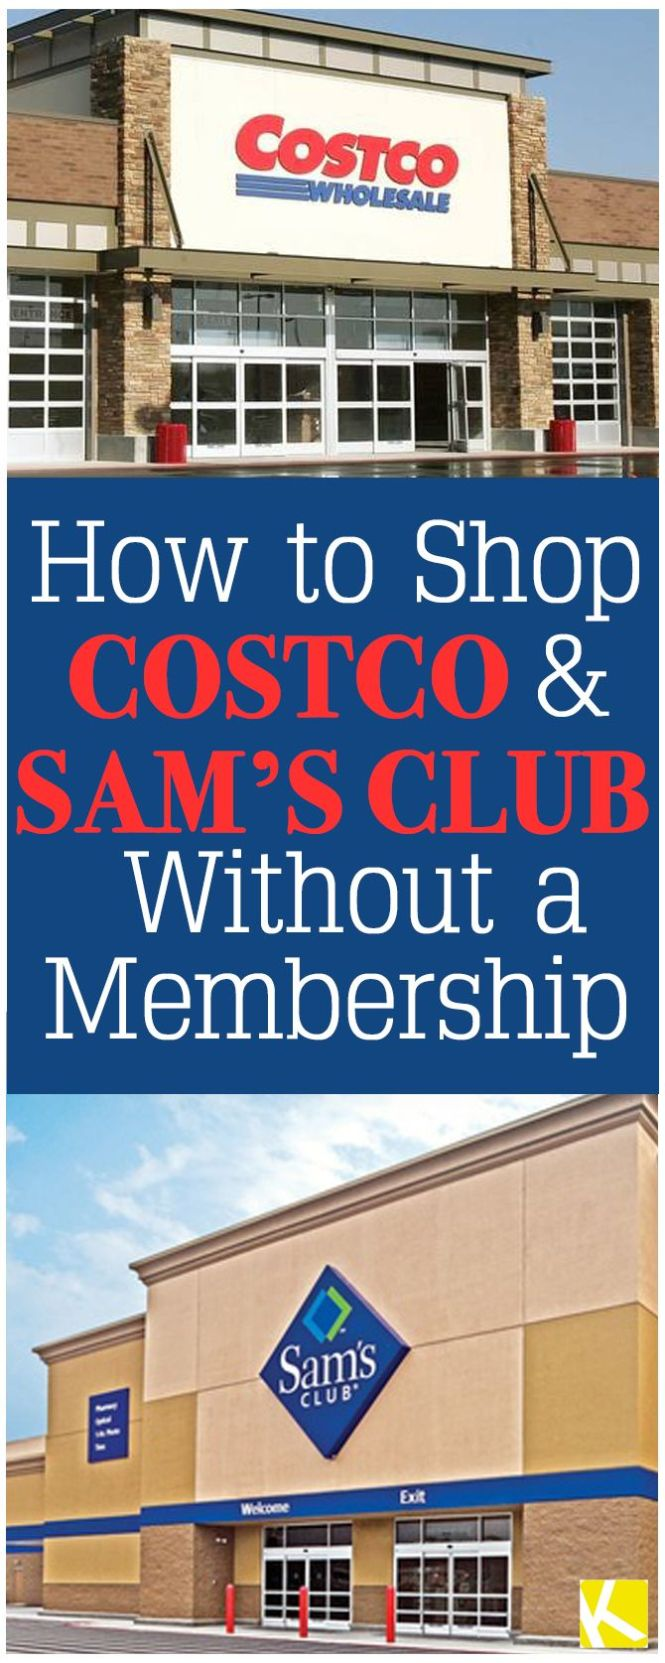 Costco And Sam S Club How To Without Ing A Membership